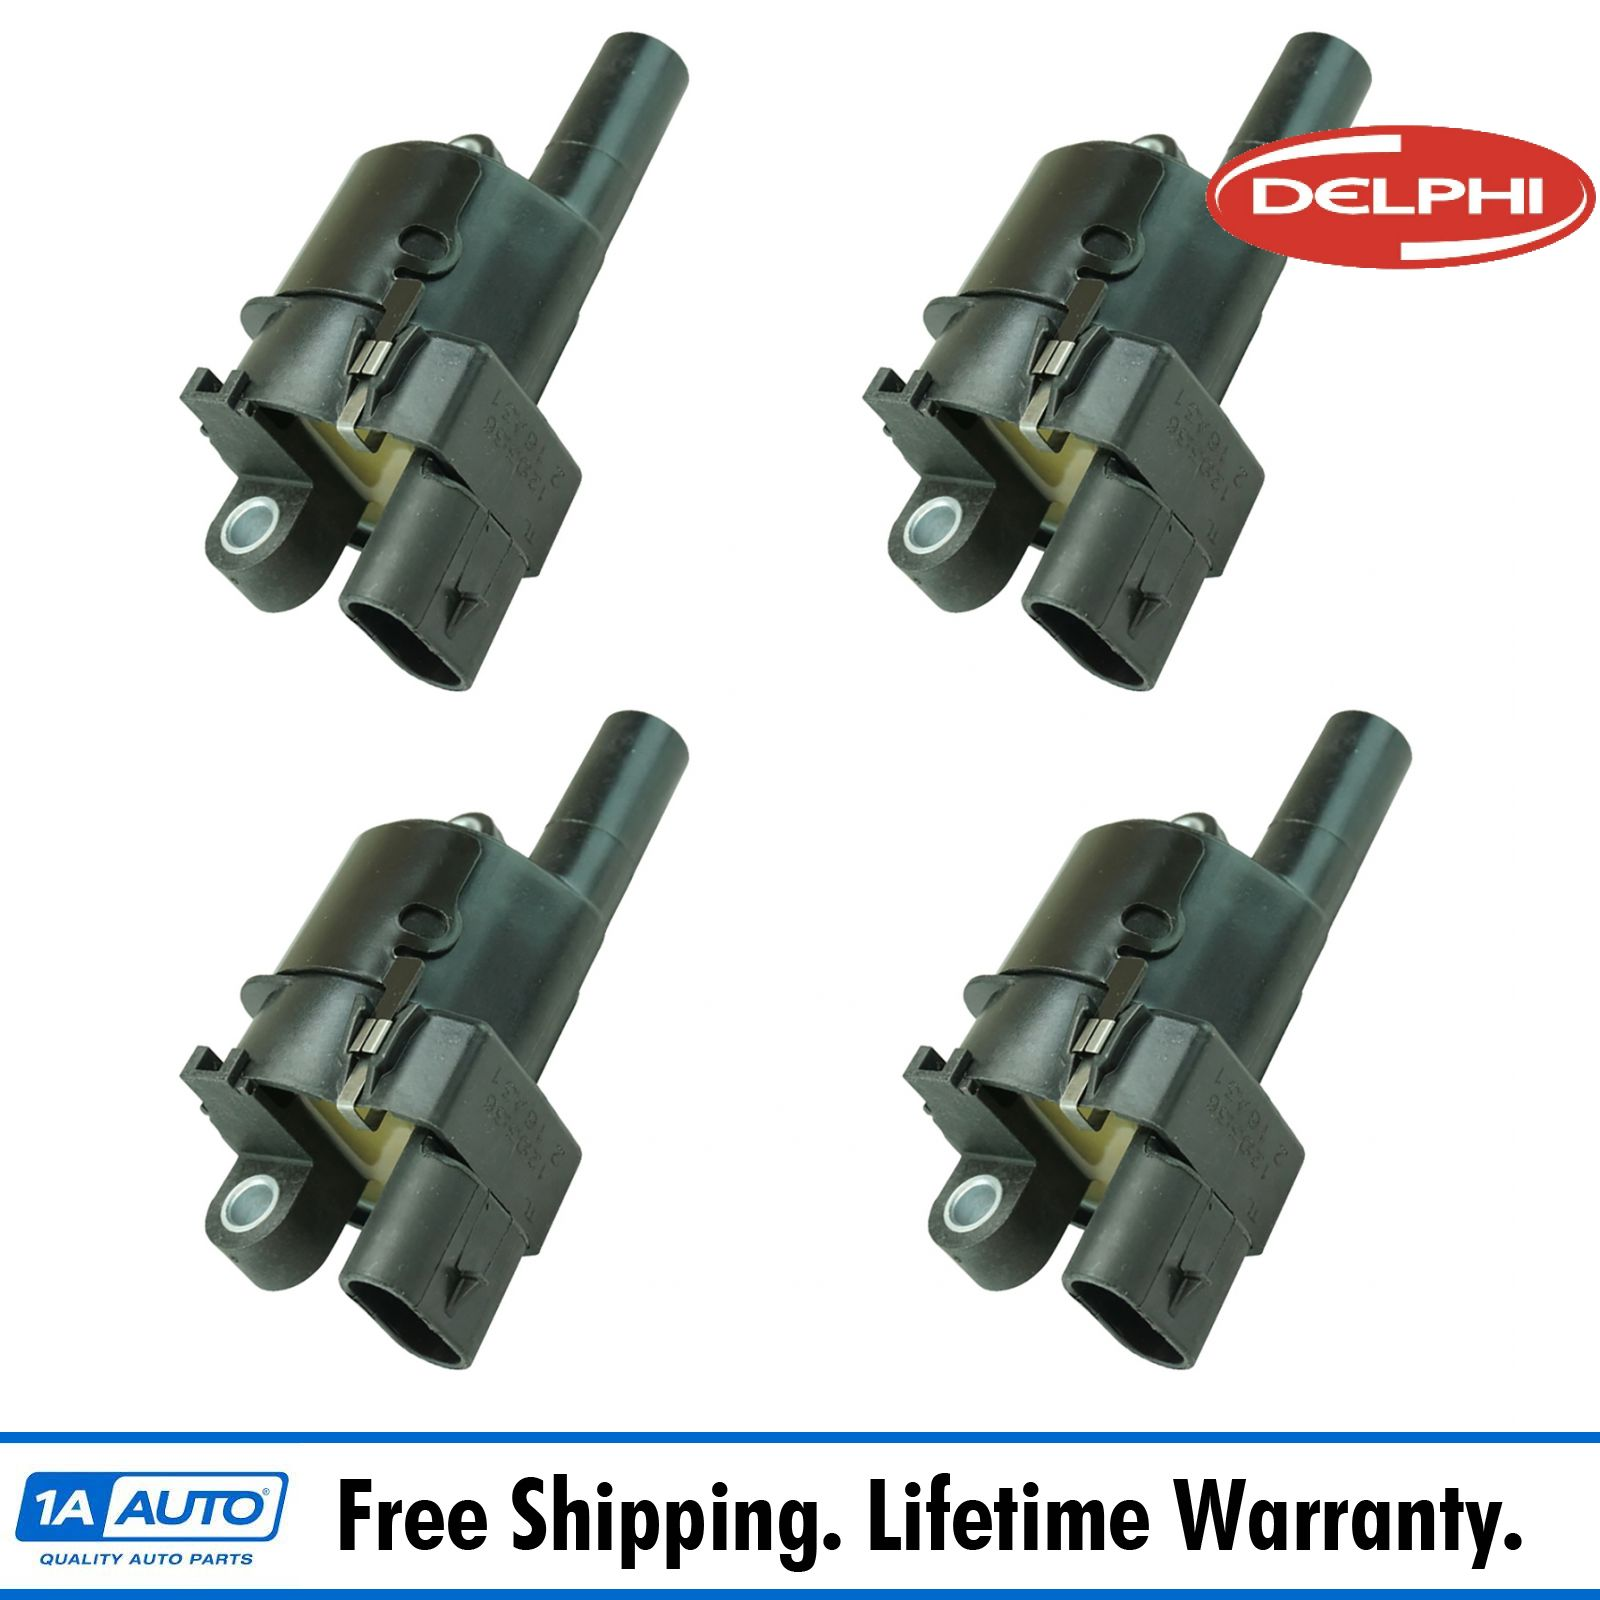 Brand New Ignition Coil For Chevy Trailblazer Gmc Pontiac Buick Cadillac V8